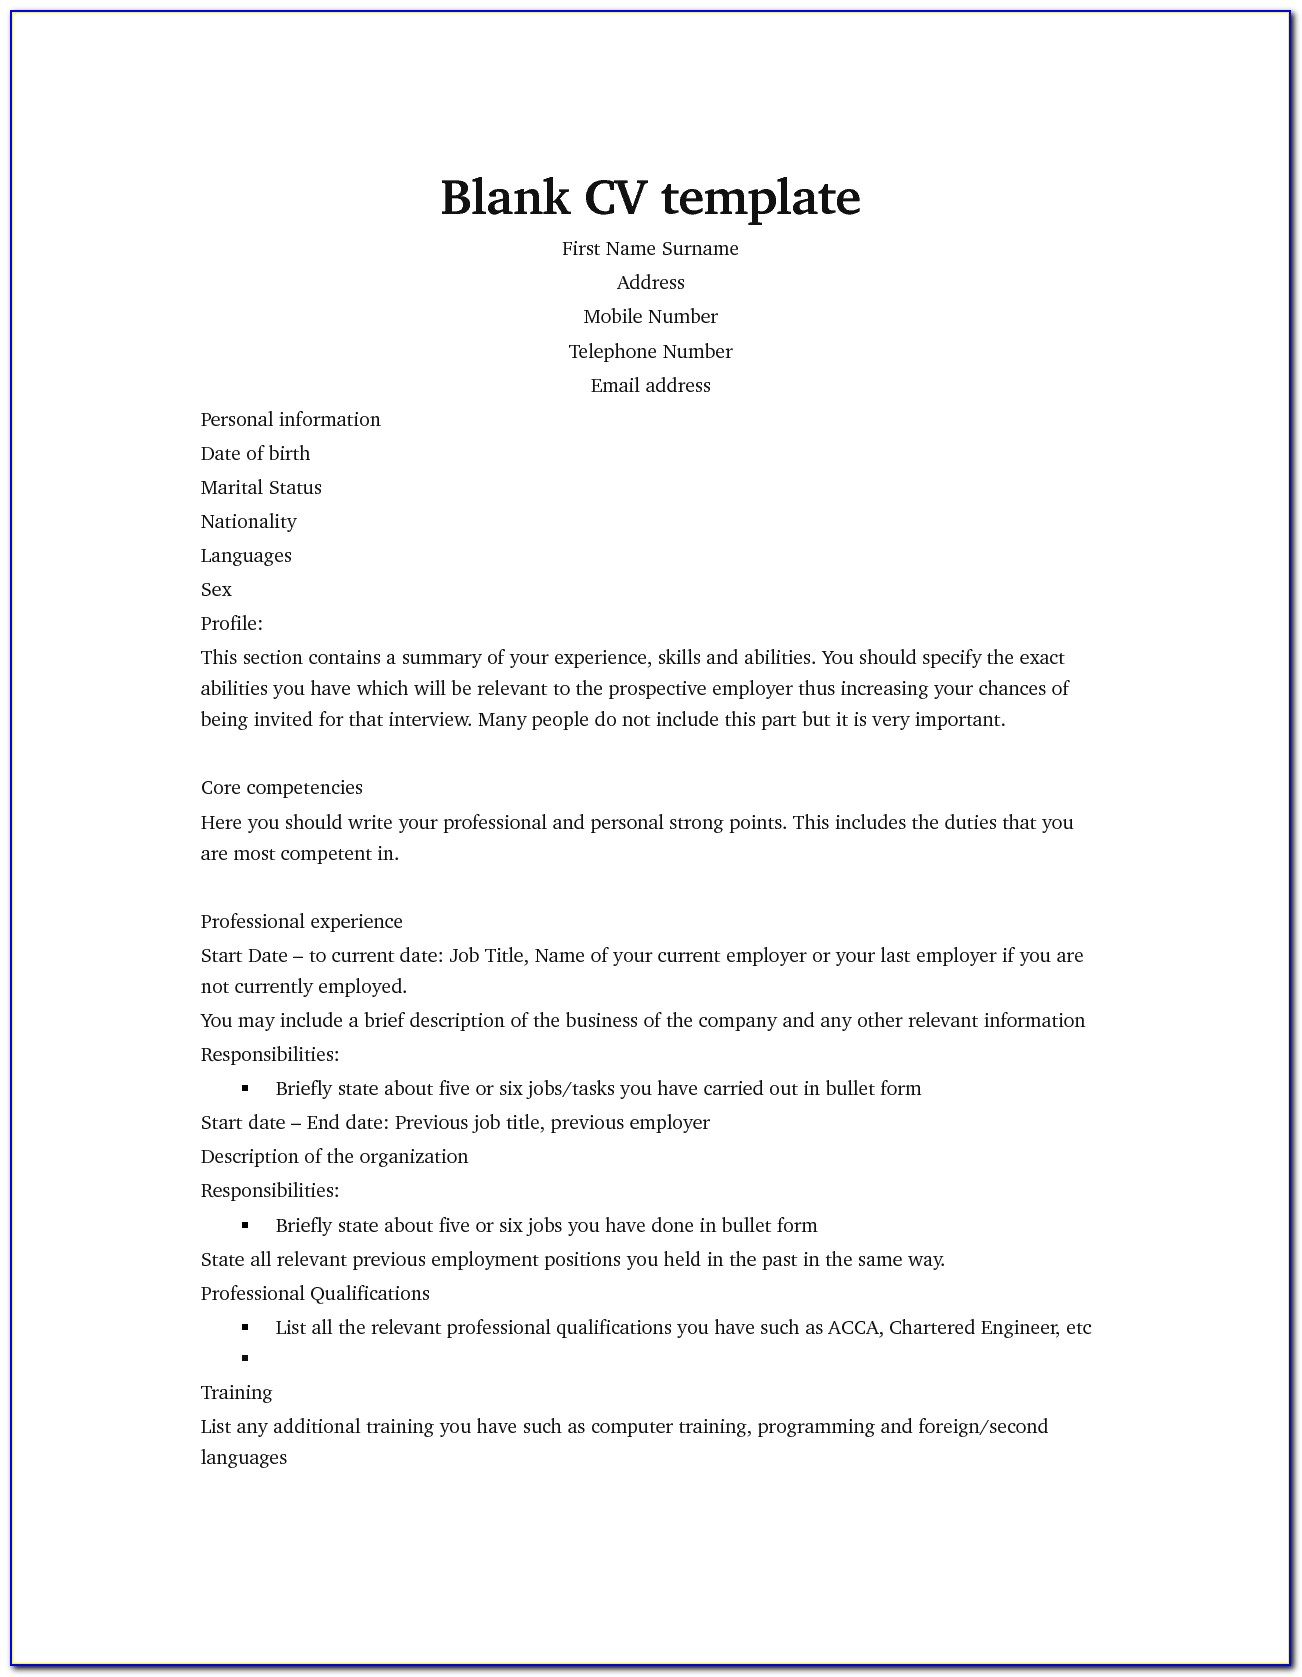 Resume Template : Builder No Cost Database Design In 85 Astounding Within Free Resume Database For Recruiters